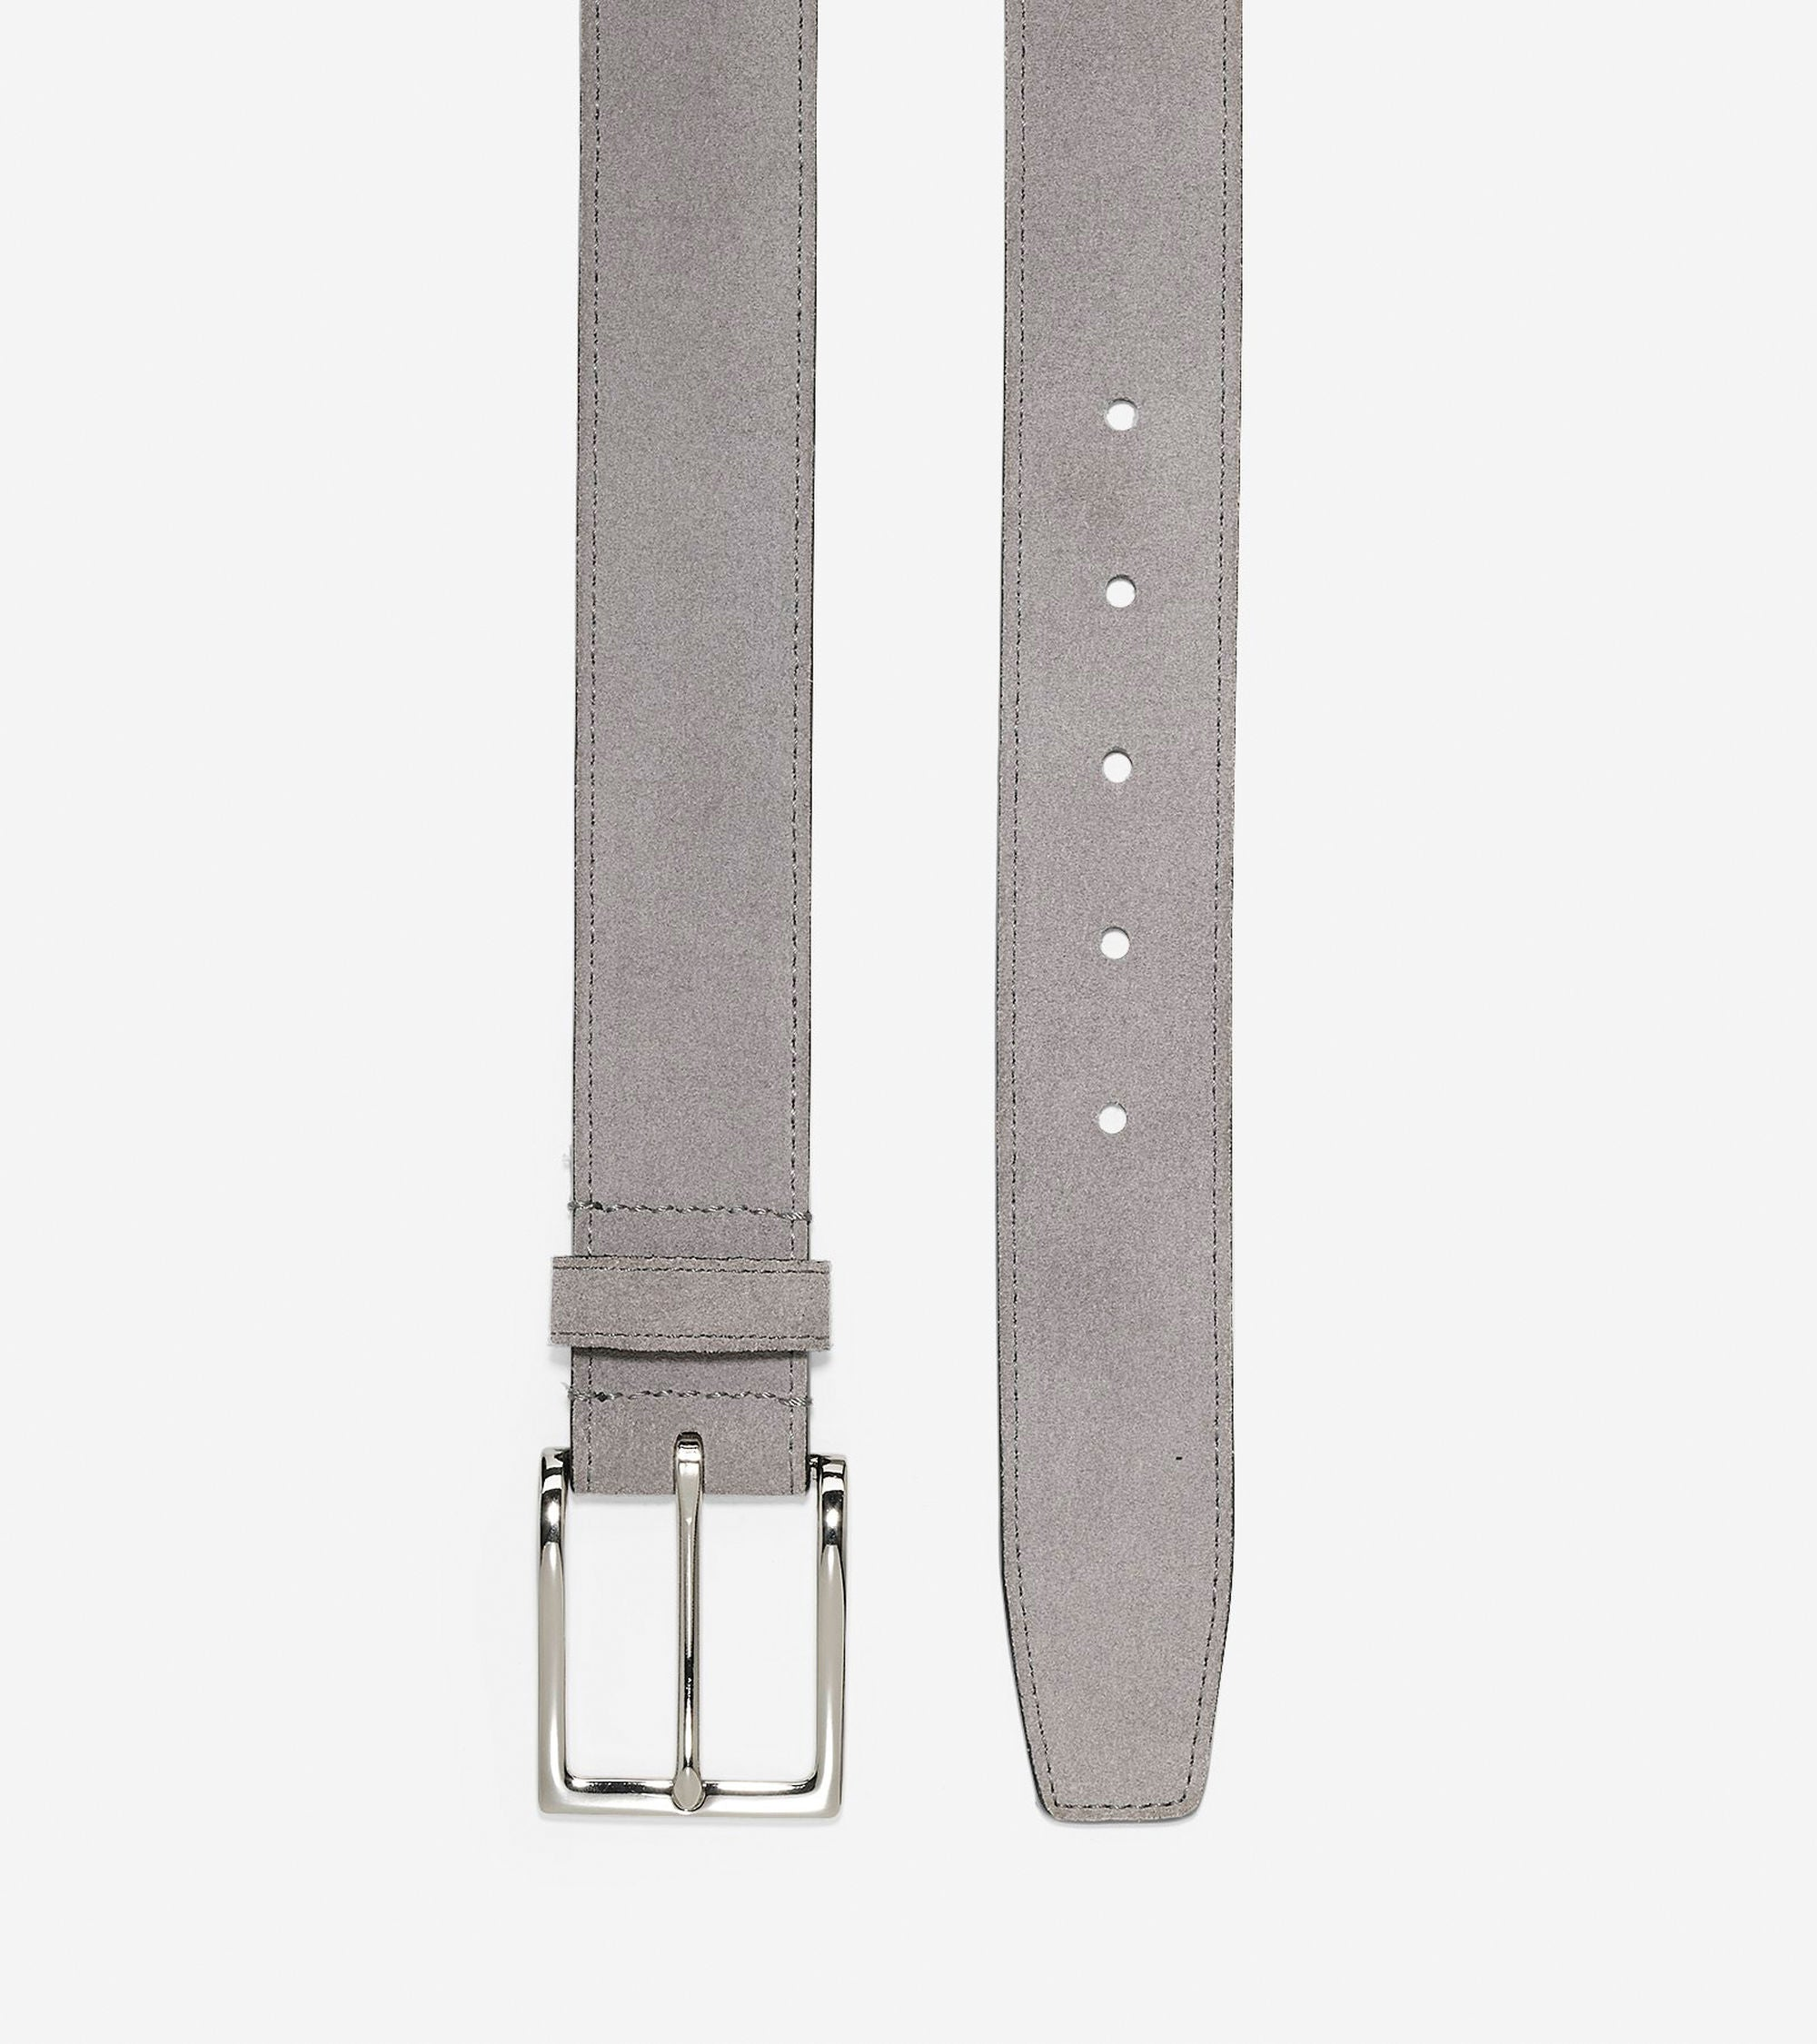 32mm Suede Belt,BELT,Cole Haan, | GentRow.com